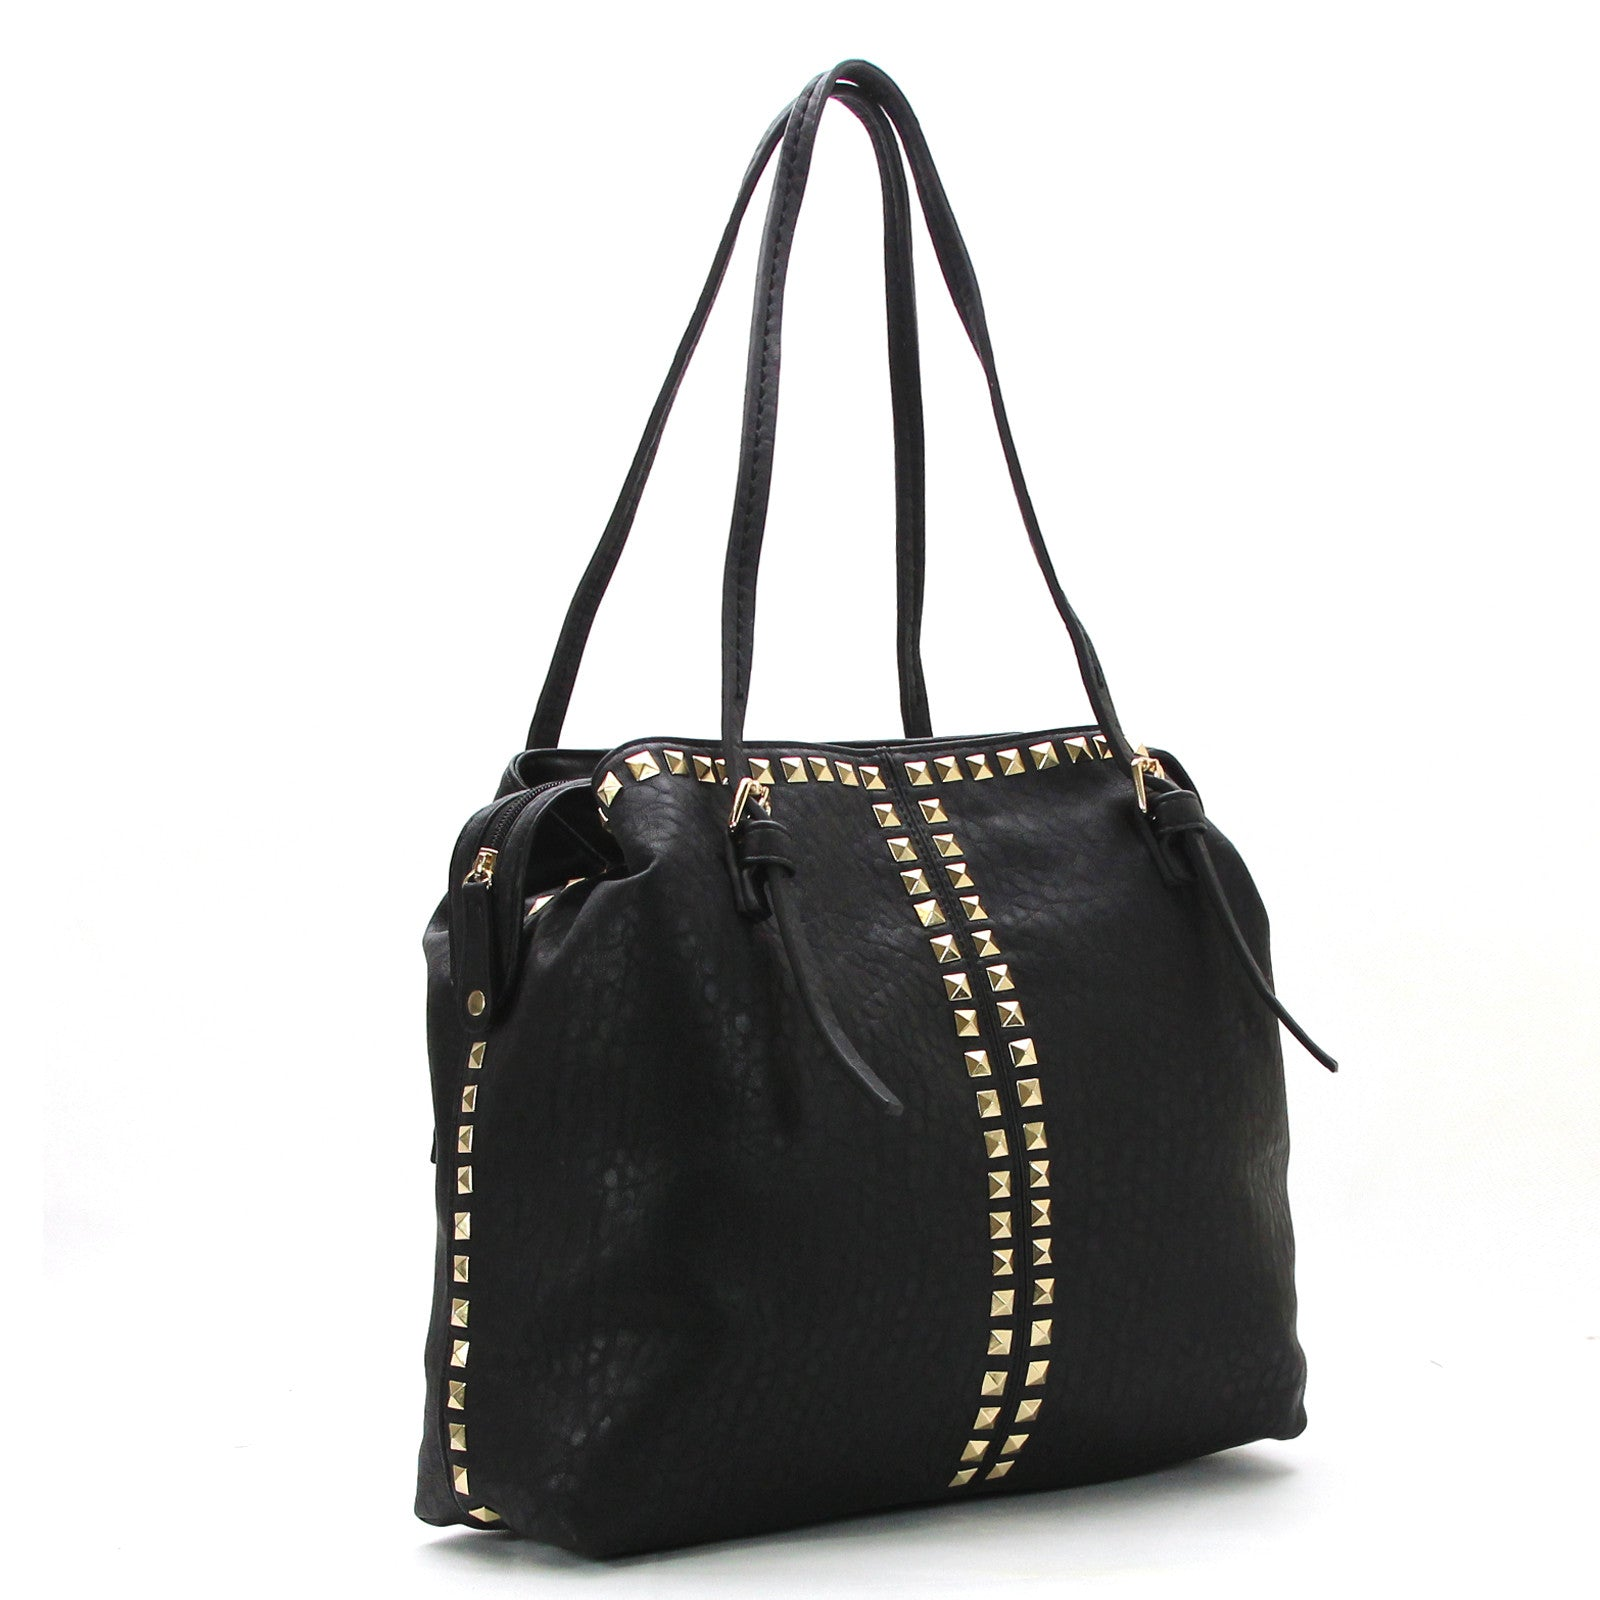 Studded Weekend Tote - Black - Pop Fashion